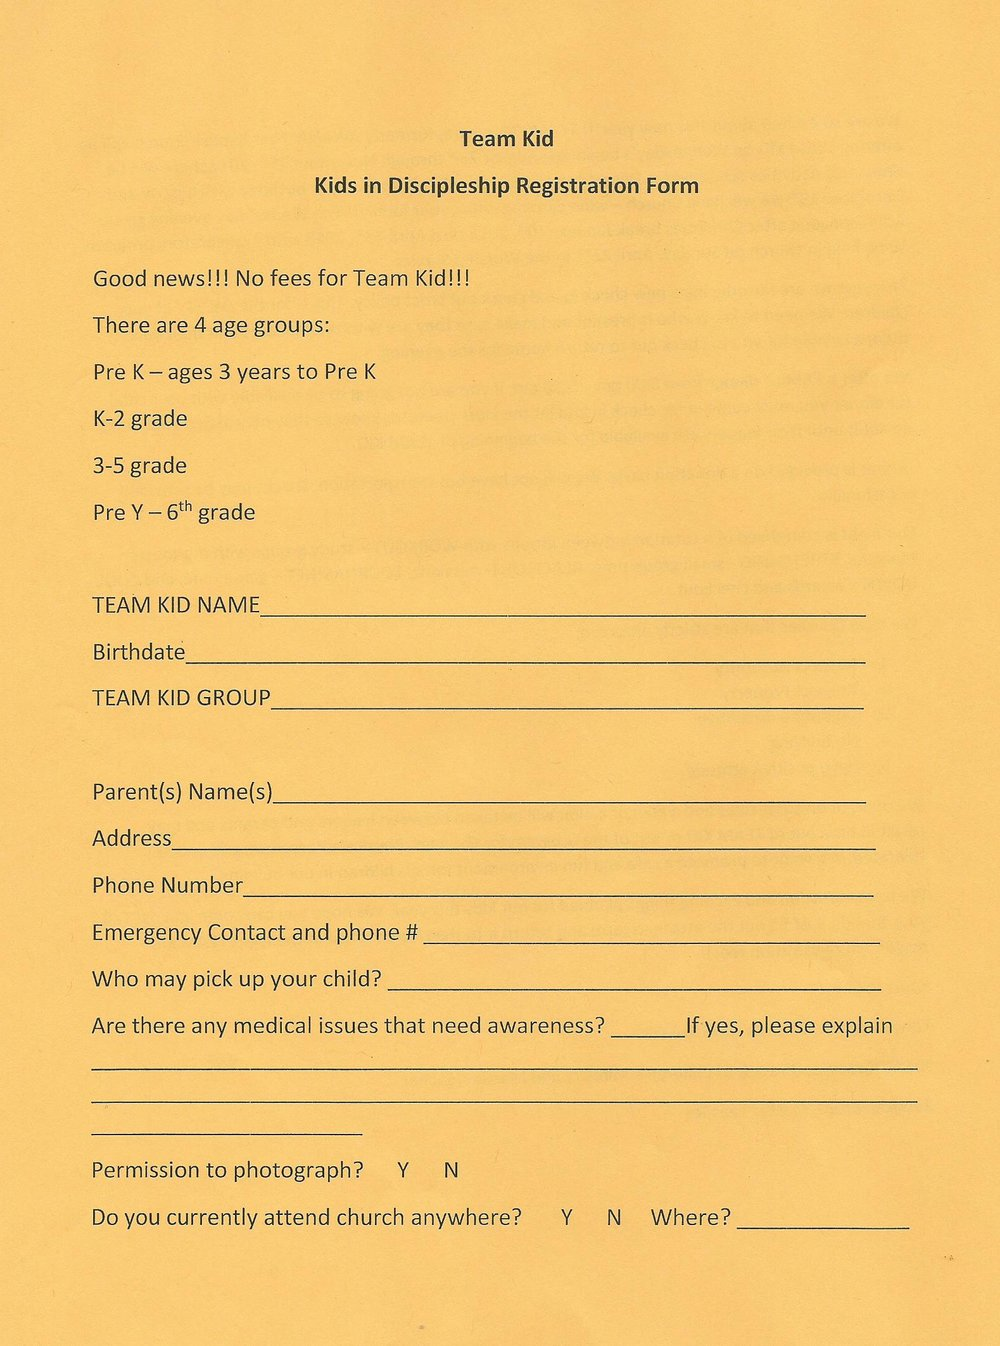 Team Kid Registration Form0001.jpg